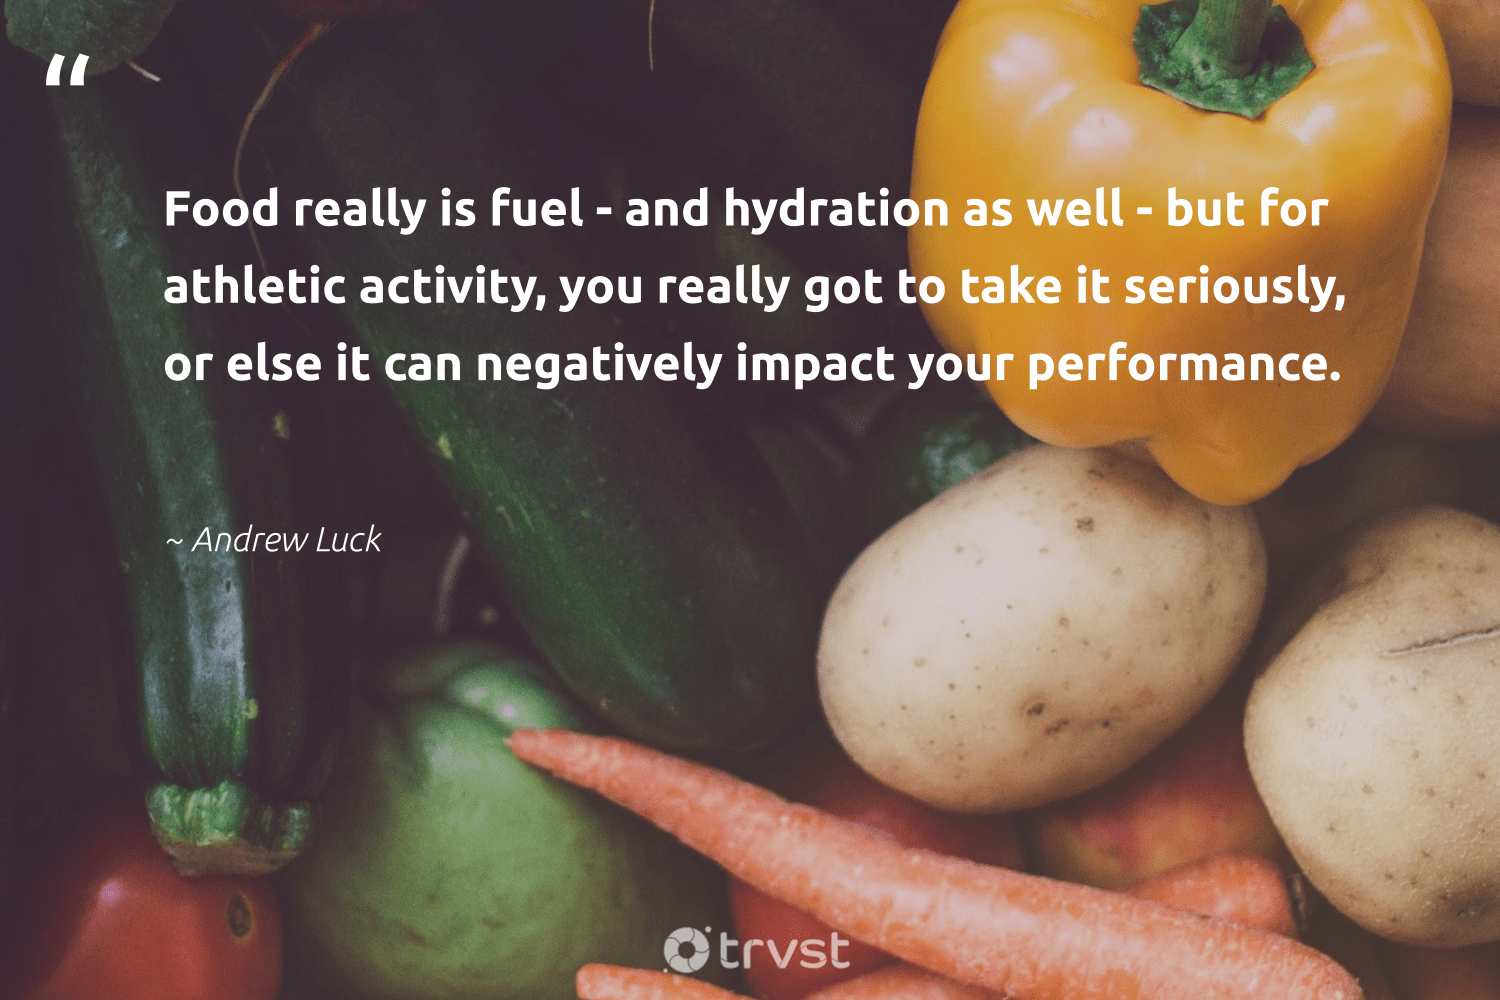 """Food really is fuel - and hydration as well - but for athletic activity, you really got to take it seriously, or else it can negatively impact your performance.""  - Andrew Luck #trvst #quotes #impact #food #foodforthepoor #mindset #weareallone #ecoconscious #hunger #begreat #sustainablefutures #dotherightthing"